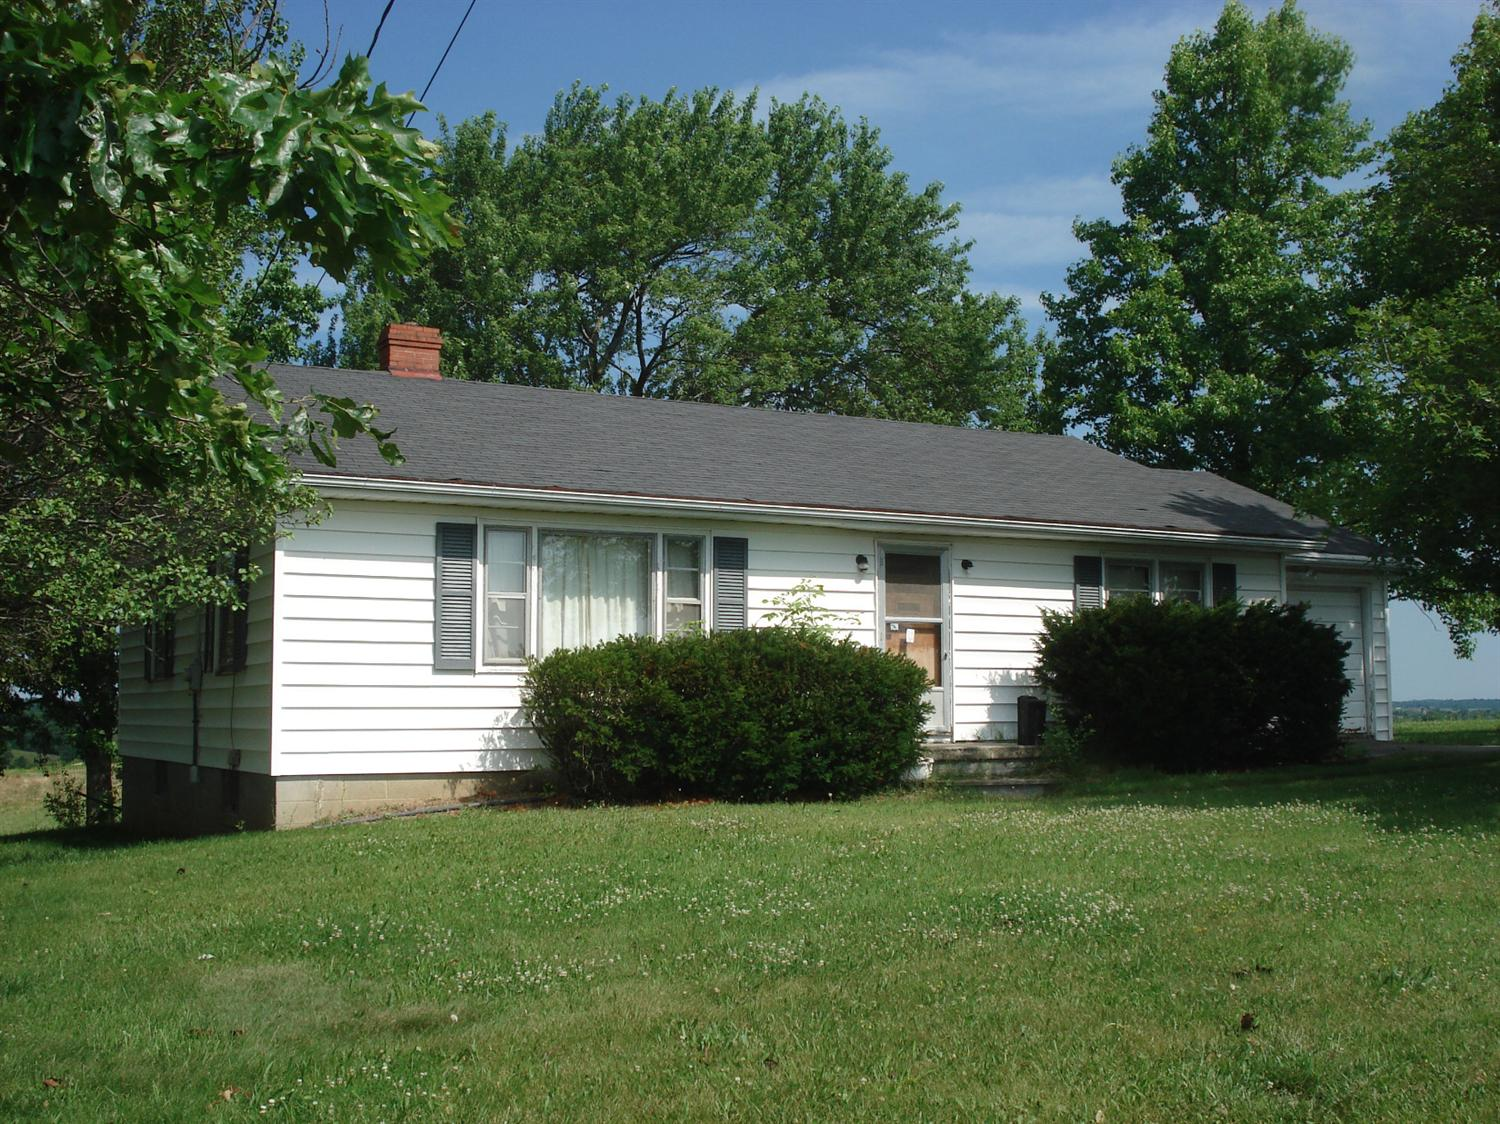 687 Bowmans Mill Rd, Berry, KY 41003